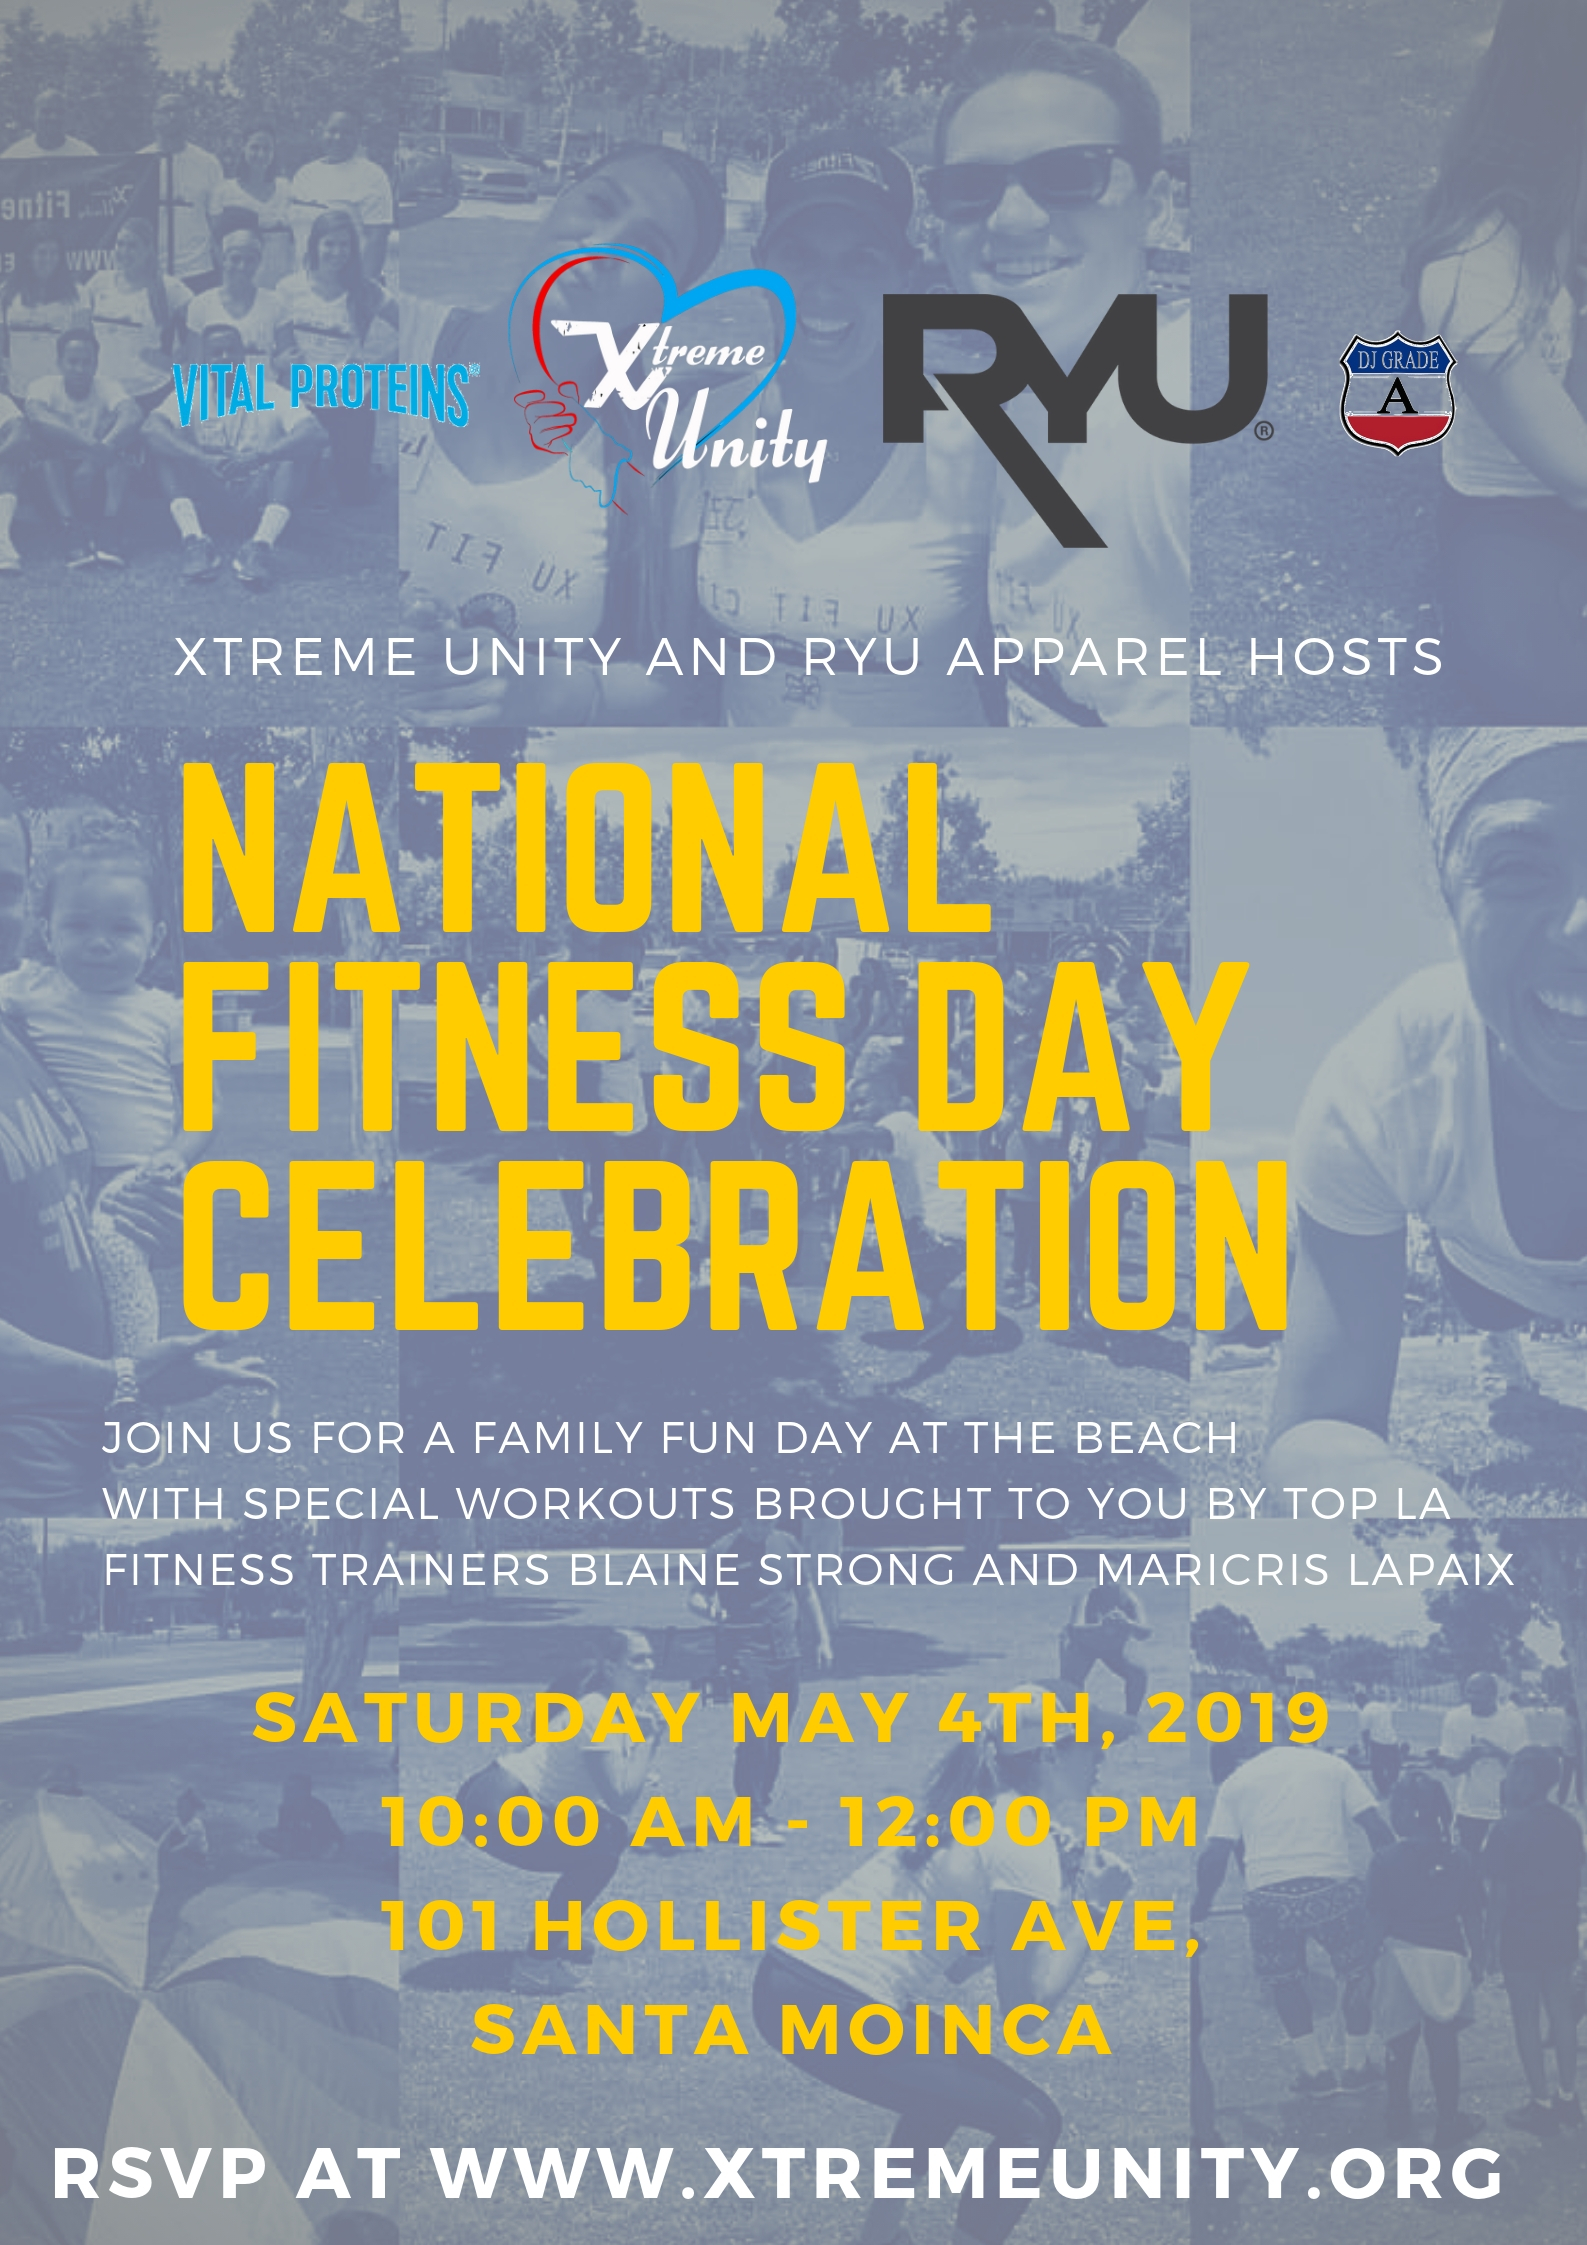 National Fitness Day Celebration - Saturday May 4th, 2019